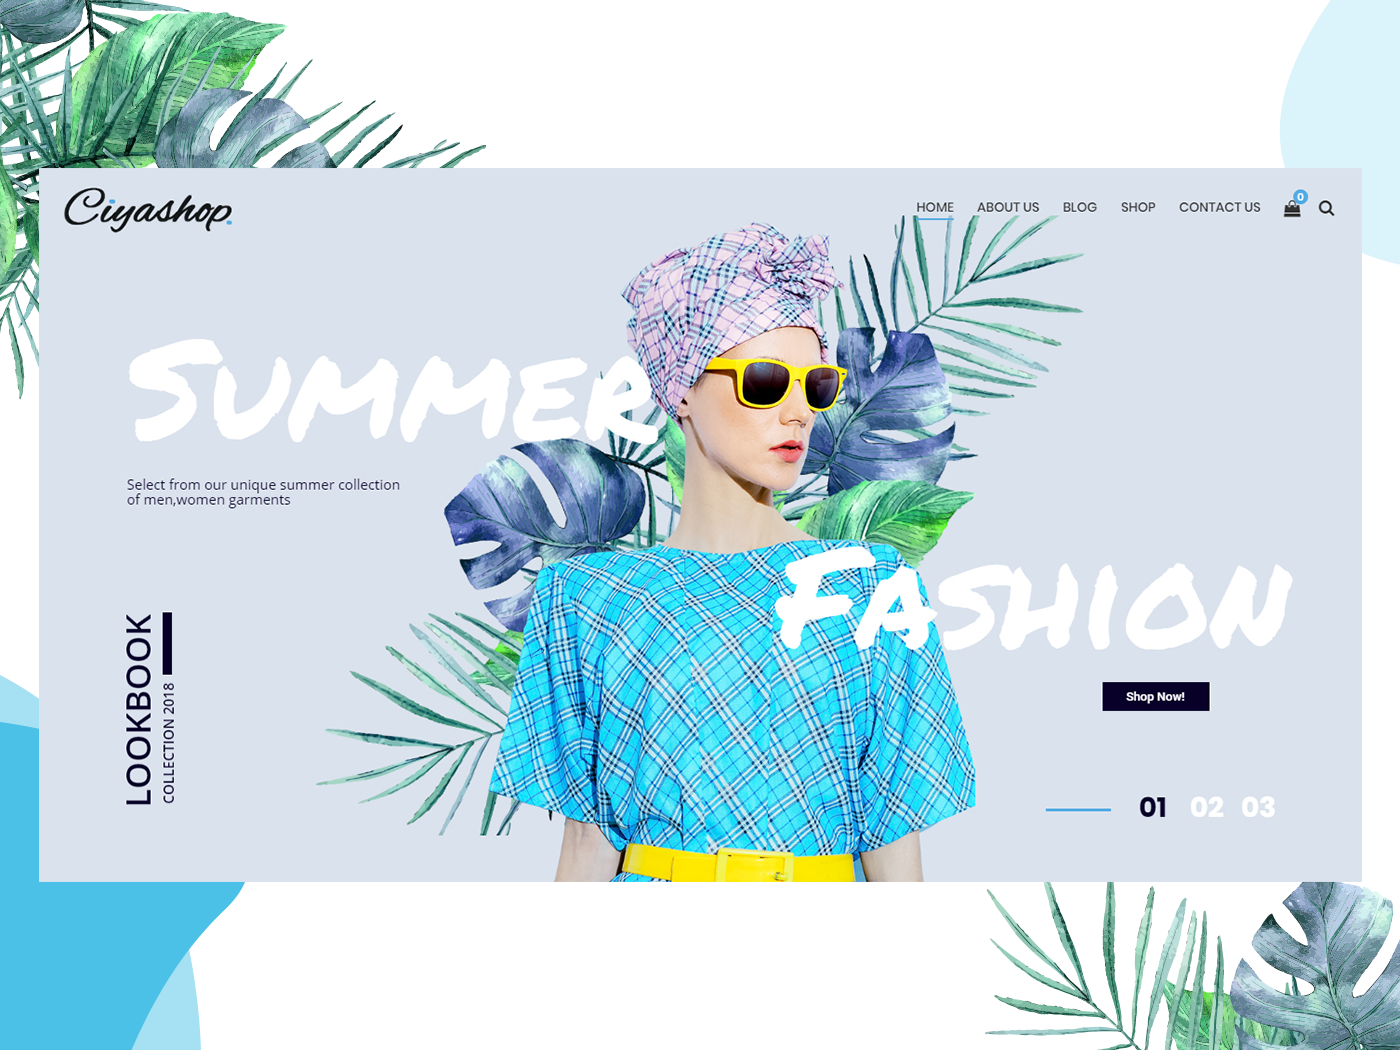 E Commerce Theme Banner Design By Potenza Global Solutions On Dribbble